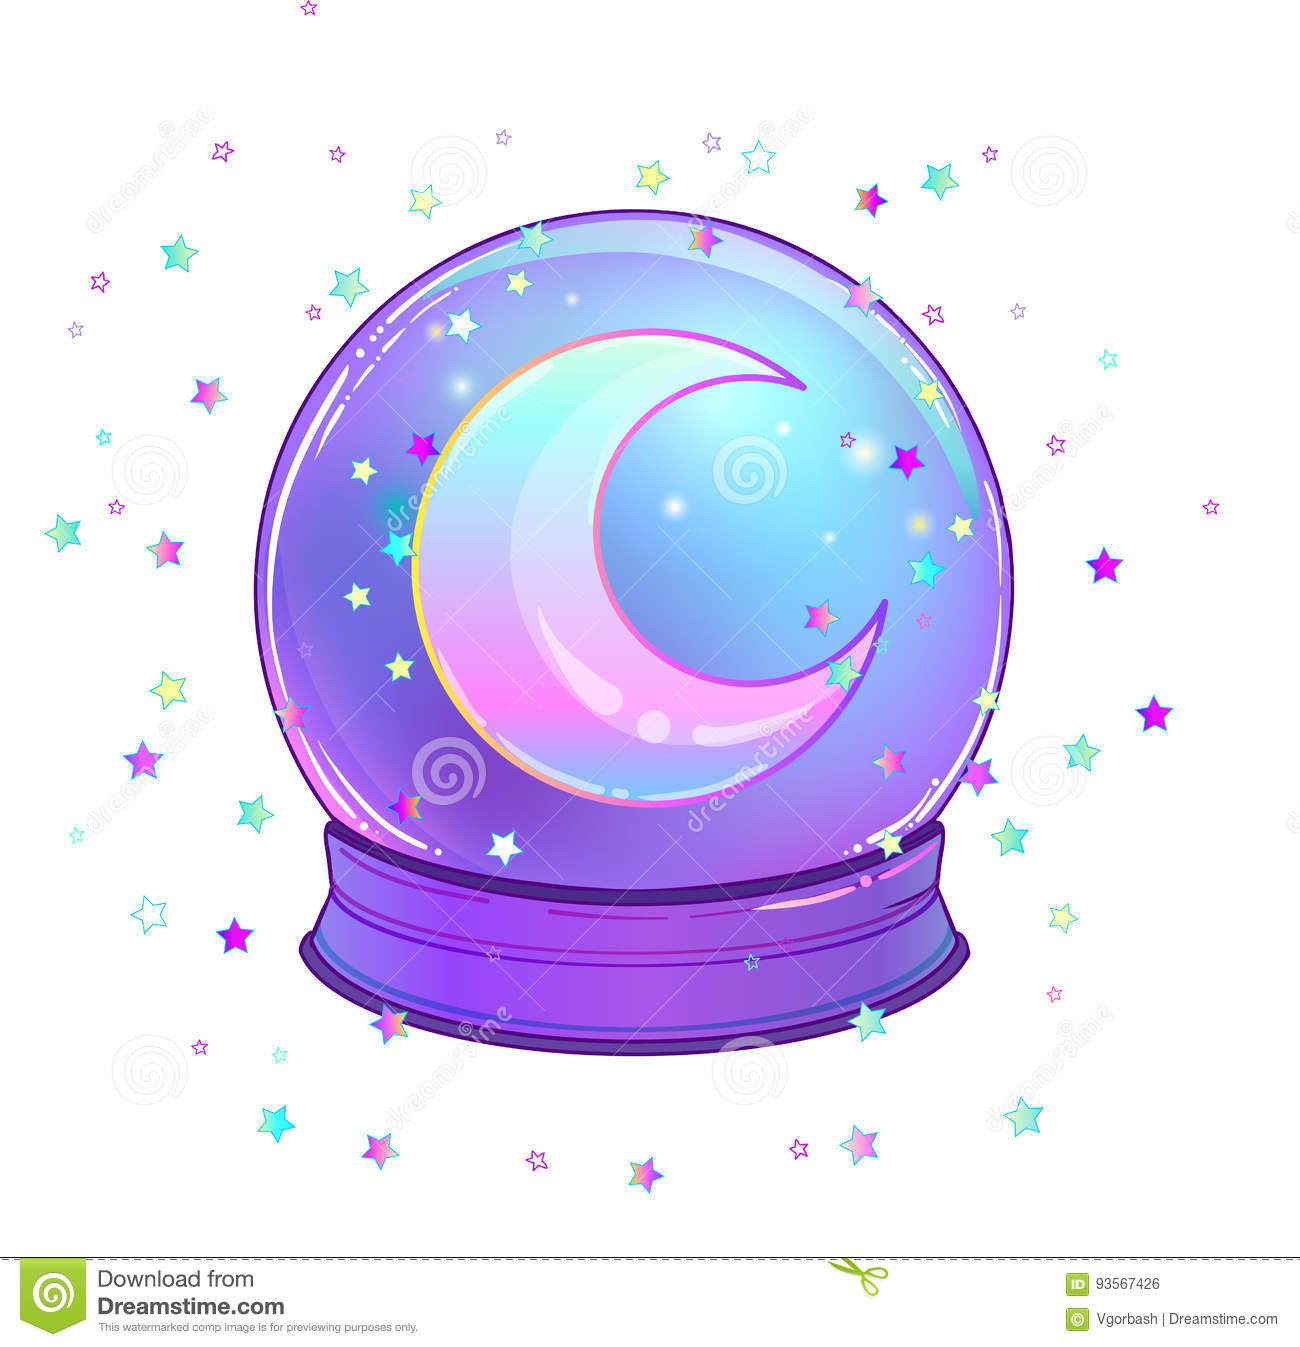 Crystal Ball with with rainbow moon and colorful stars